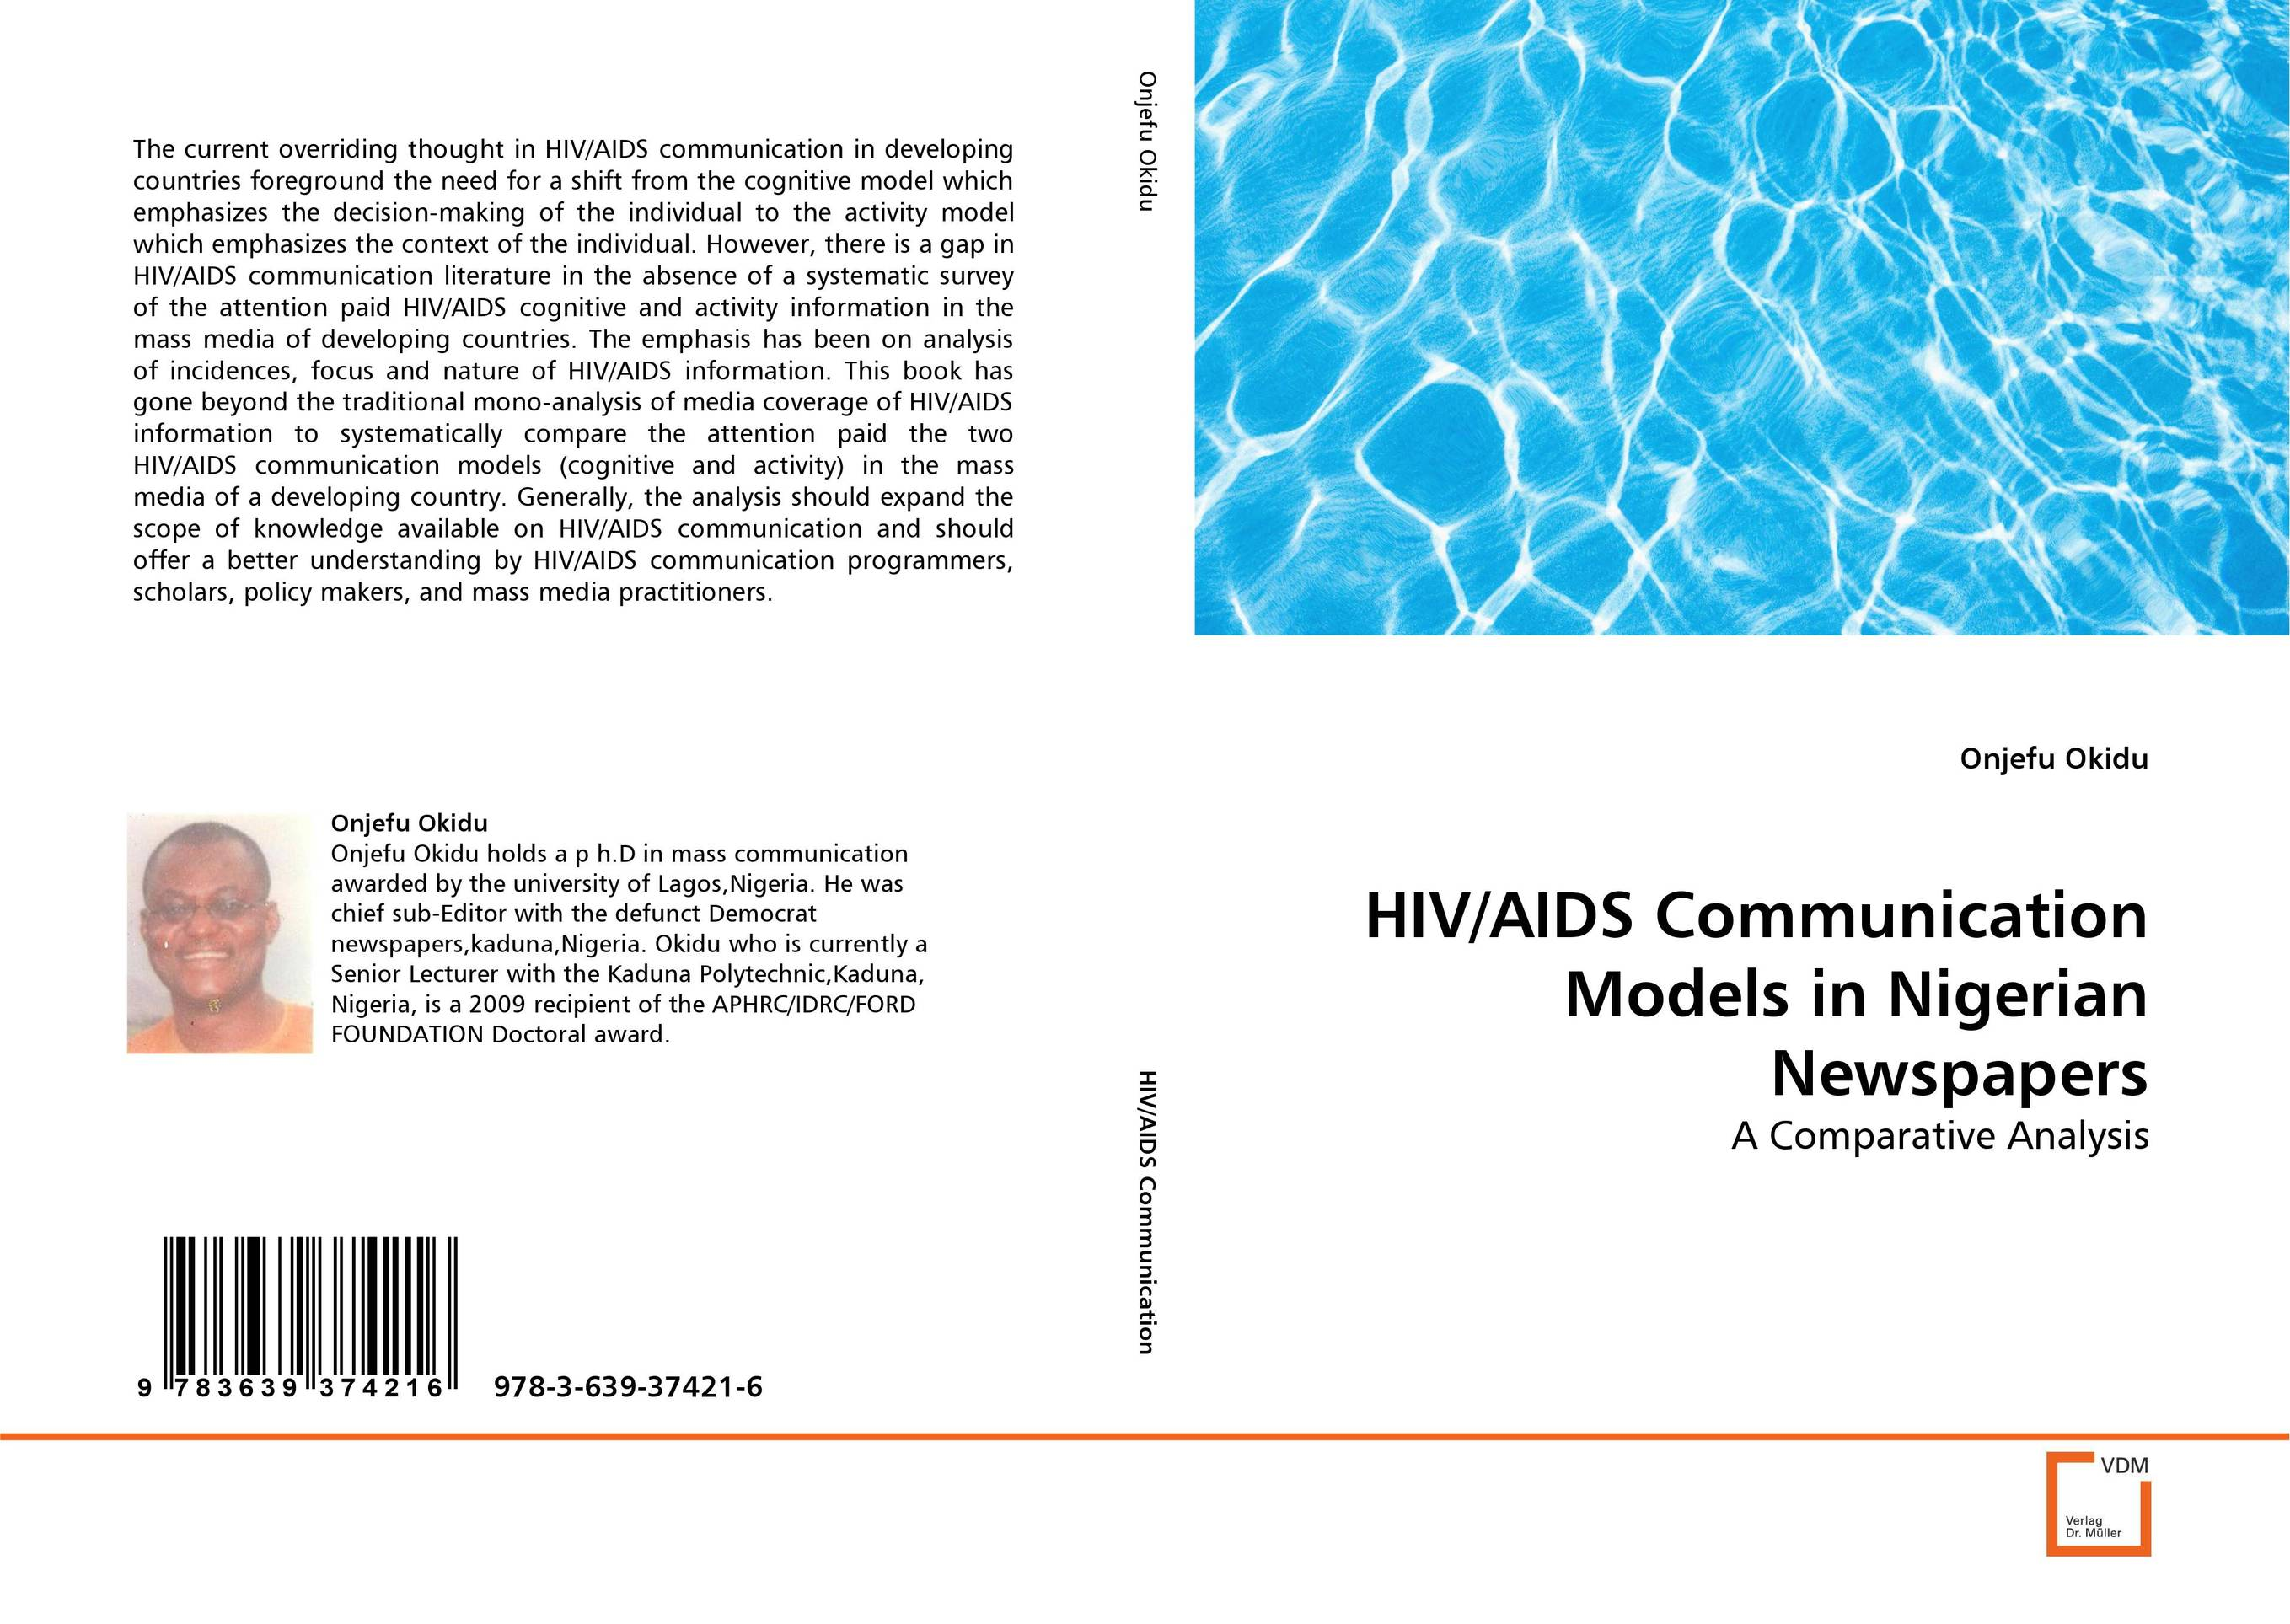 HIV/AIDS Communication Models in Nigerian Newspapers survival analysis and stochastic modelling on hiv aids data